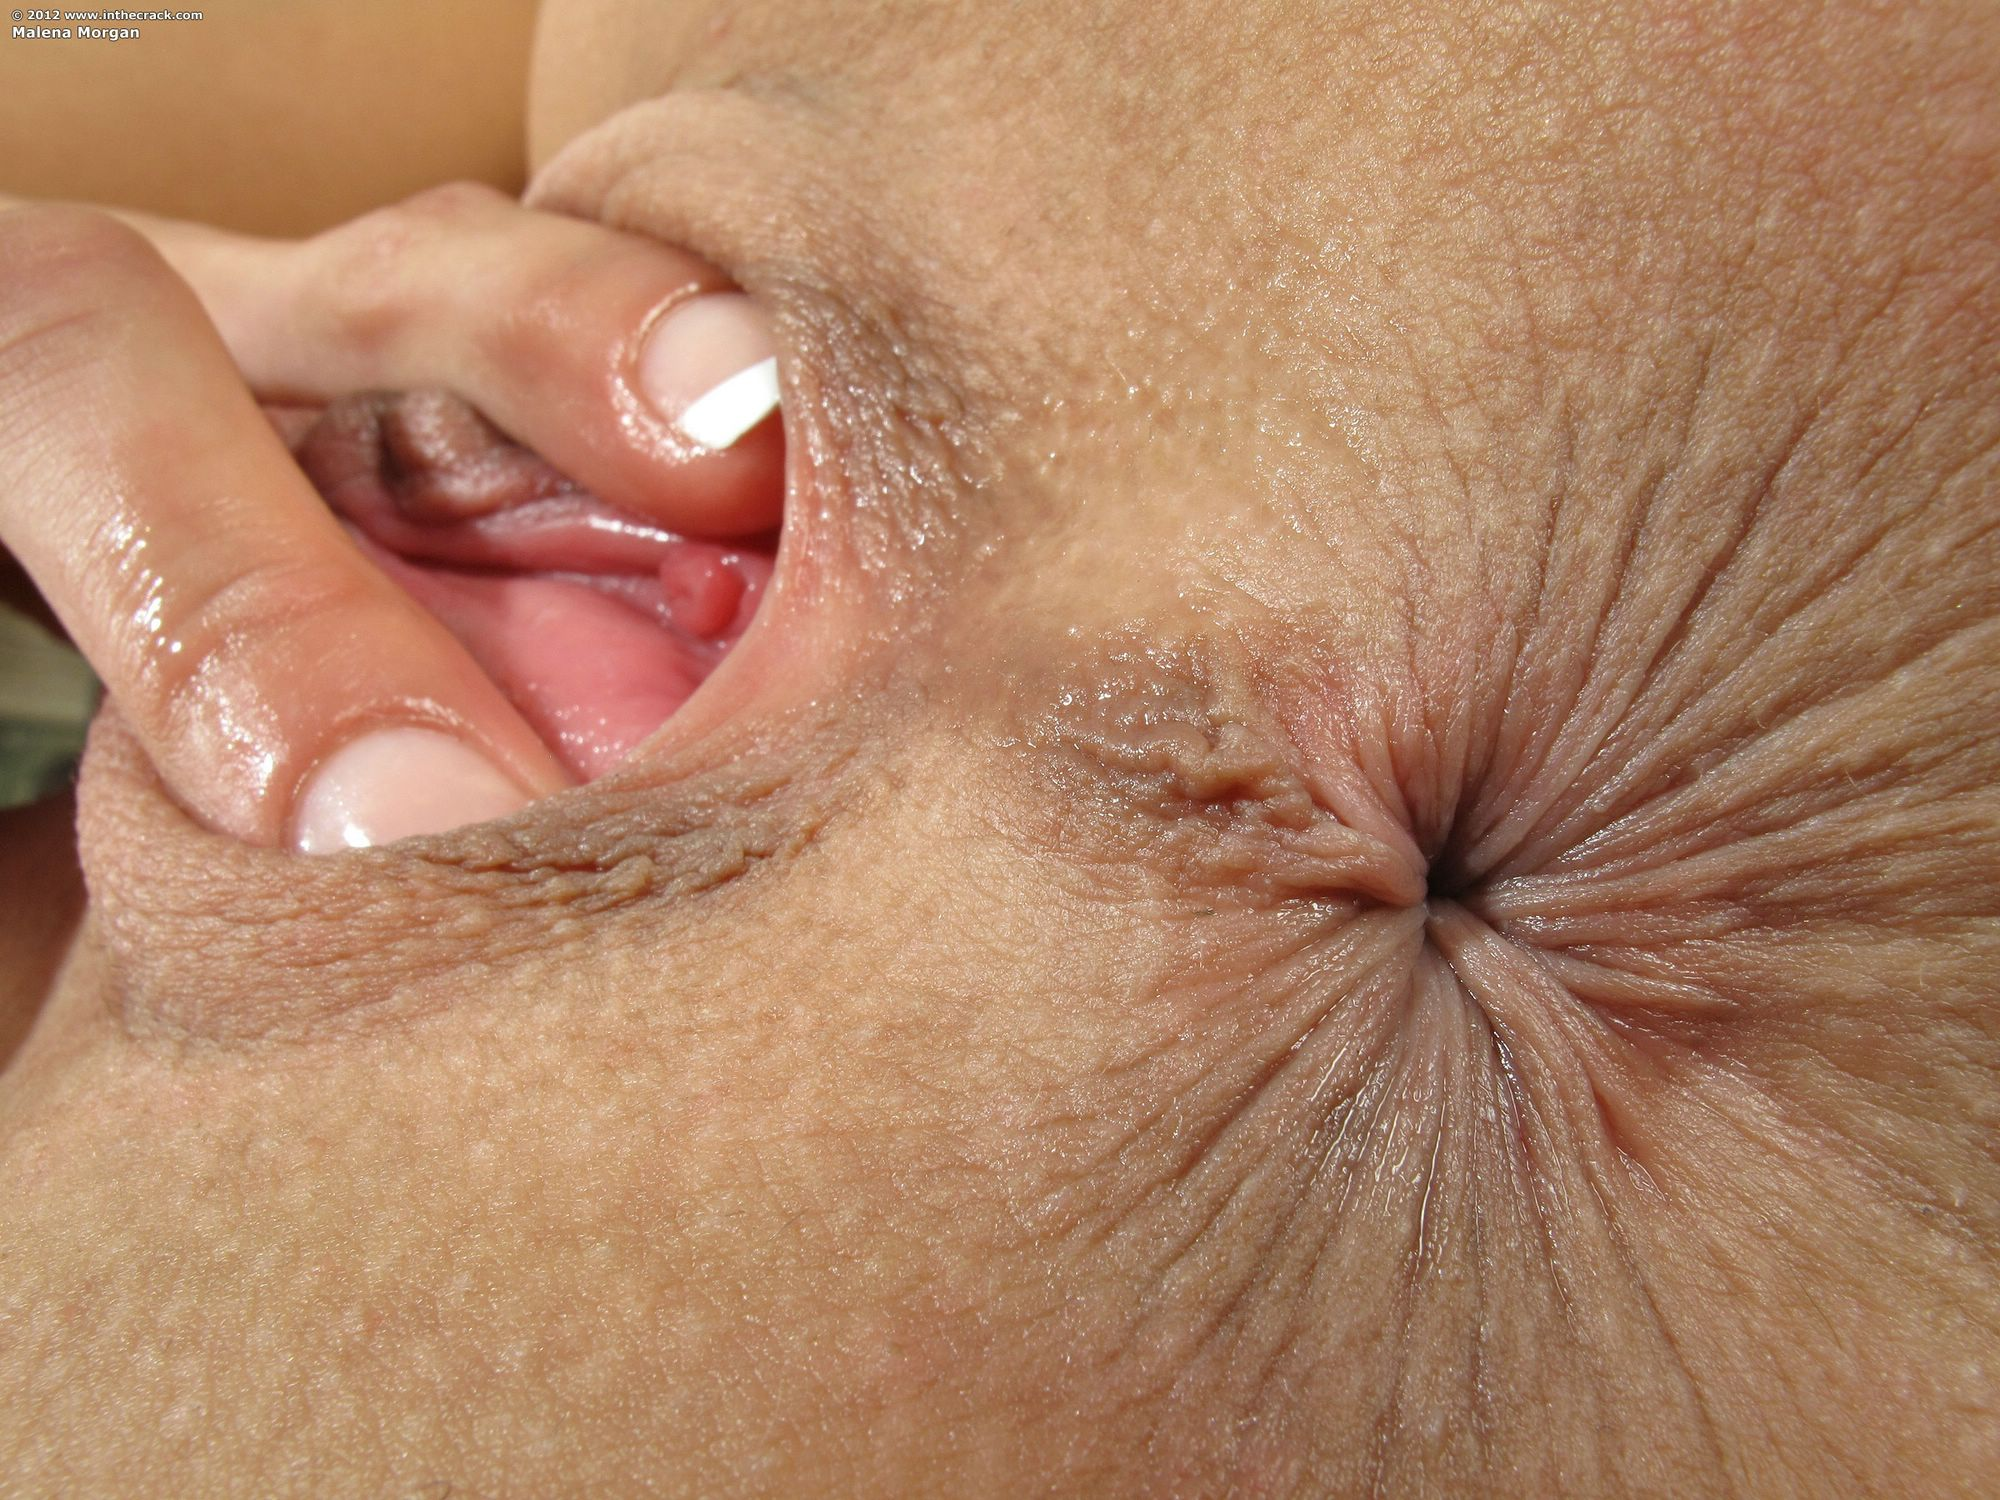 Black anal close up